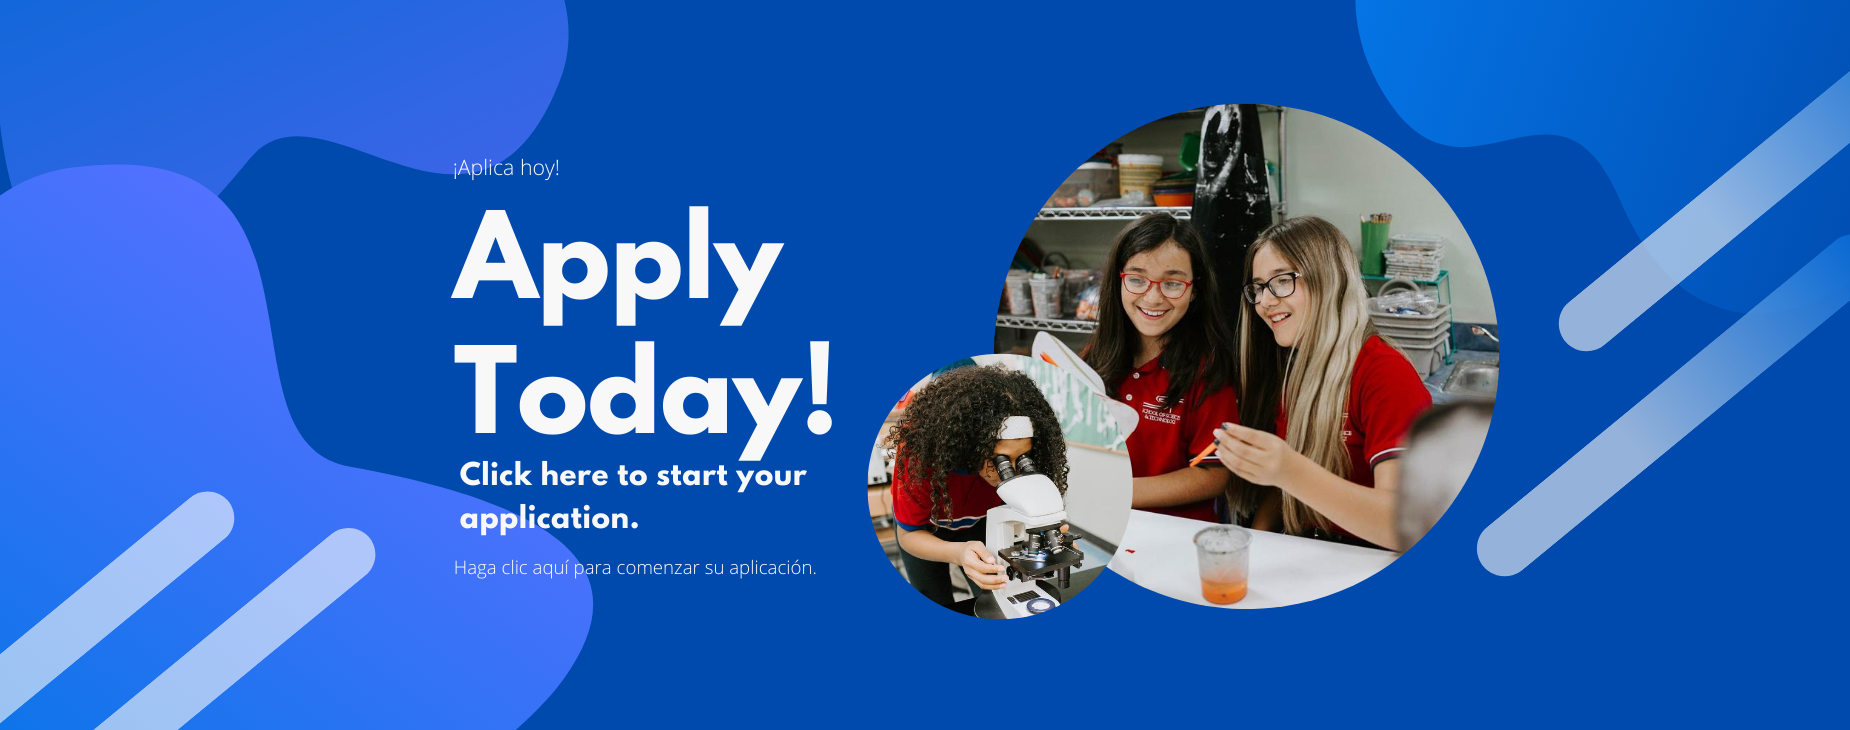 Apply Today! Click here to start your application. | ¡Aplica hoy!, Haga clic aquí para comenzar su aplicación.